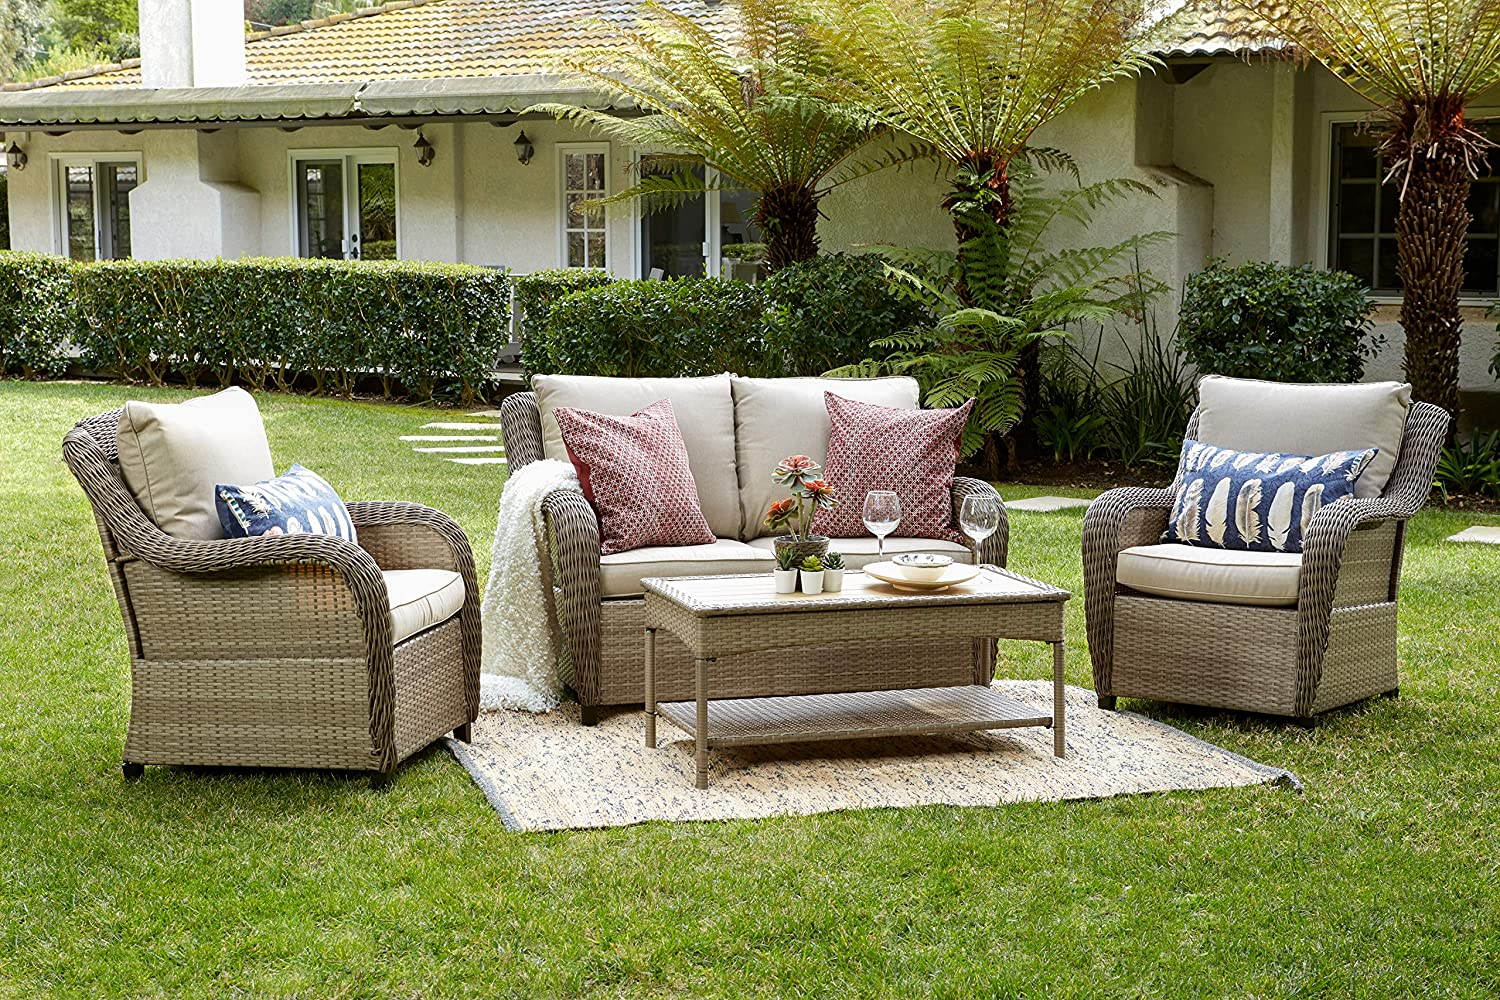 Quality Outdoor Living 65-517298 Houston All-Weather Wicker 4 Piece Deep Seating Set, Tan Cushions